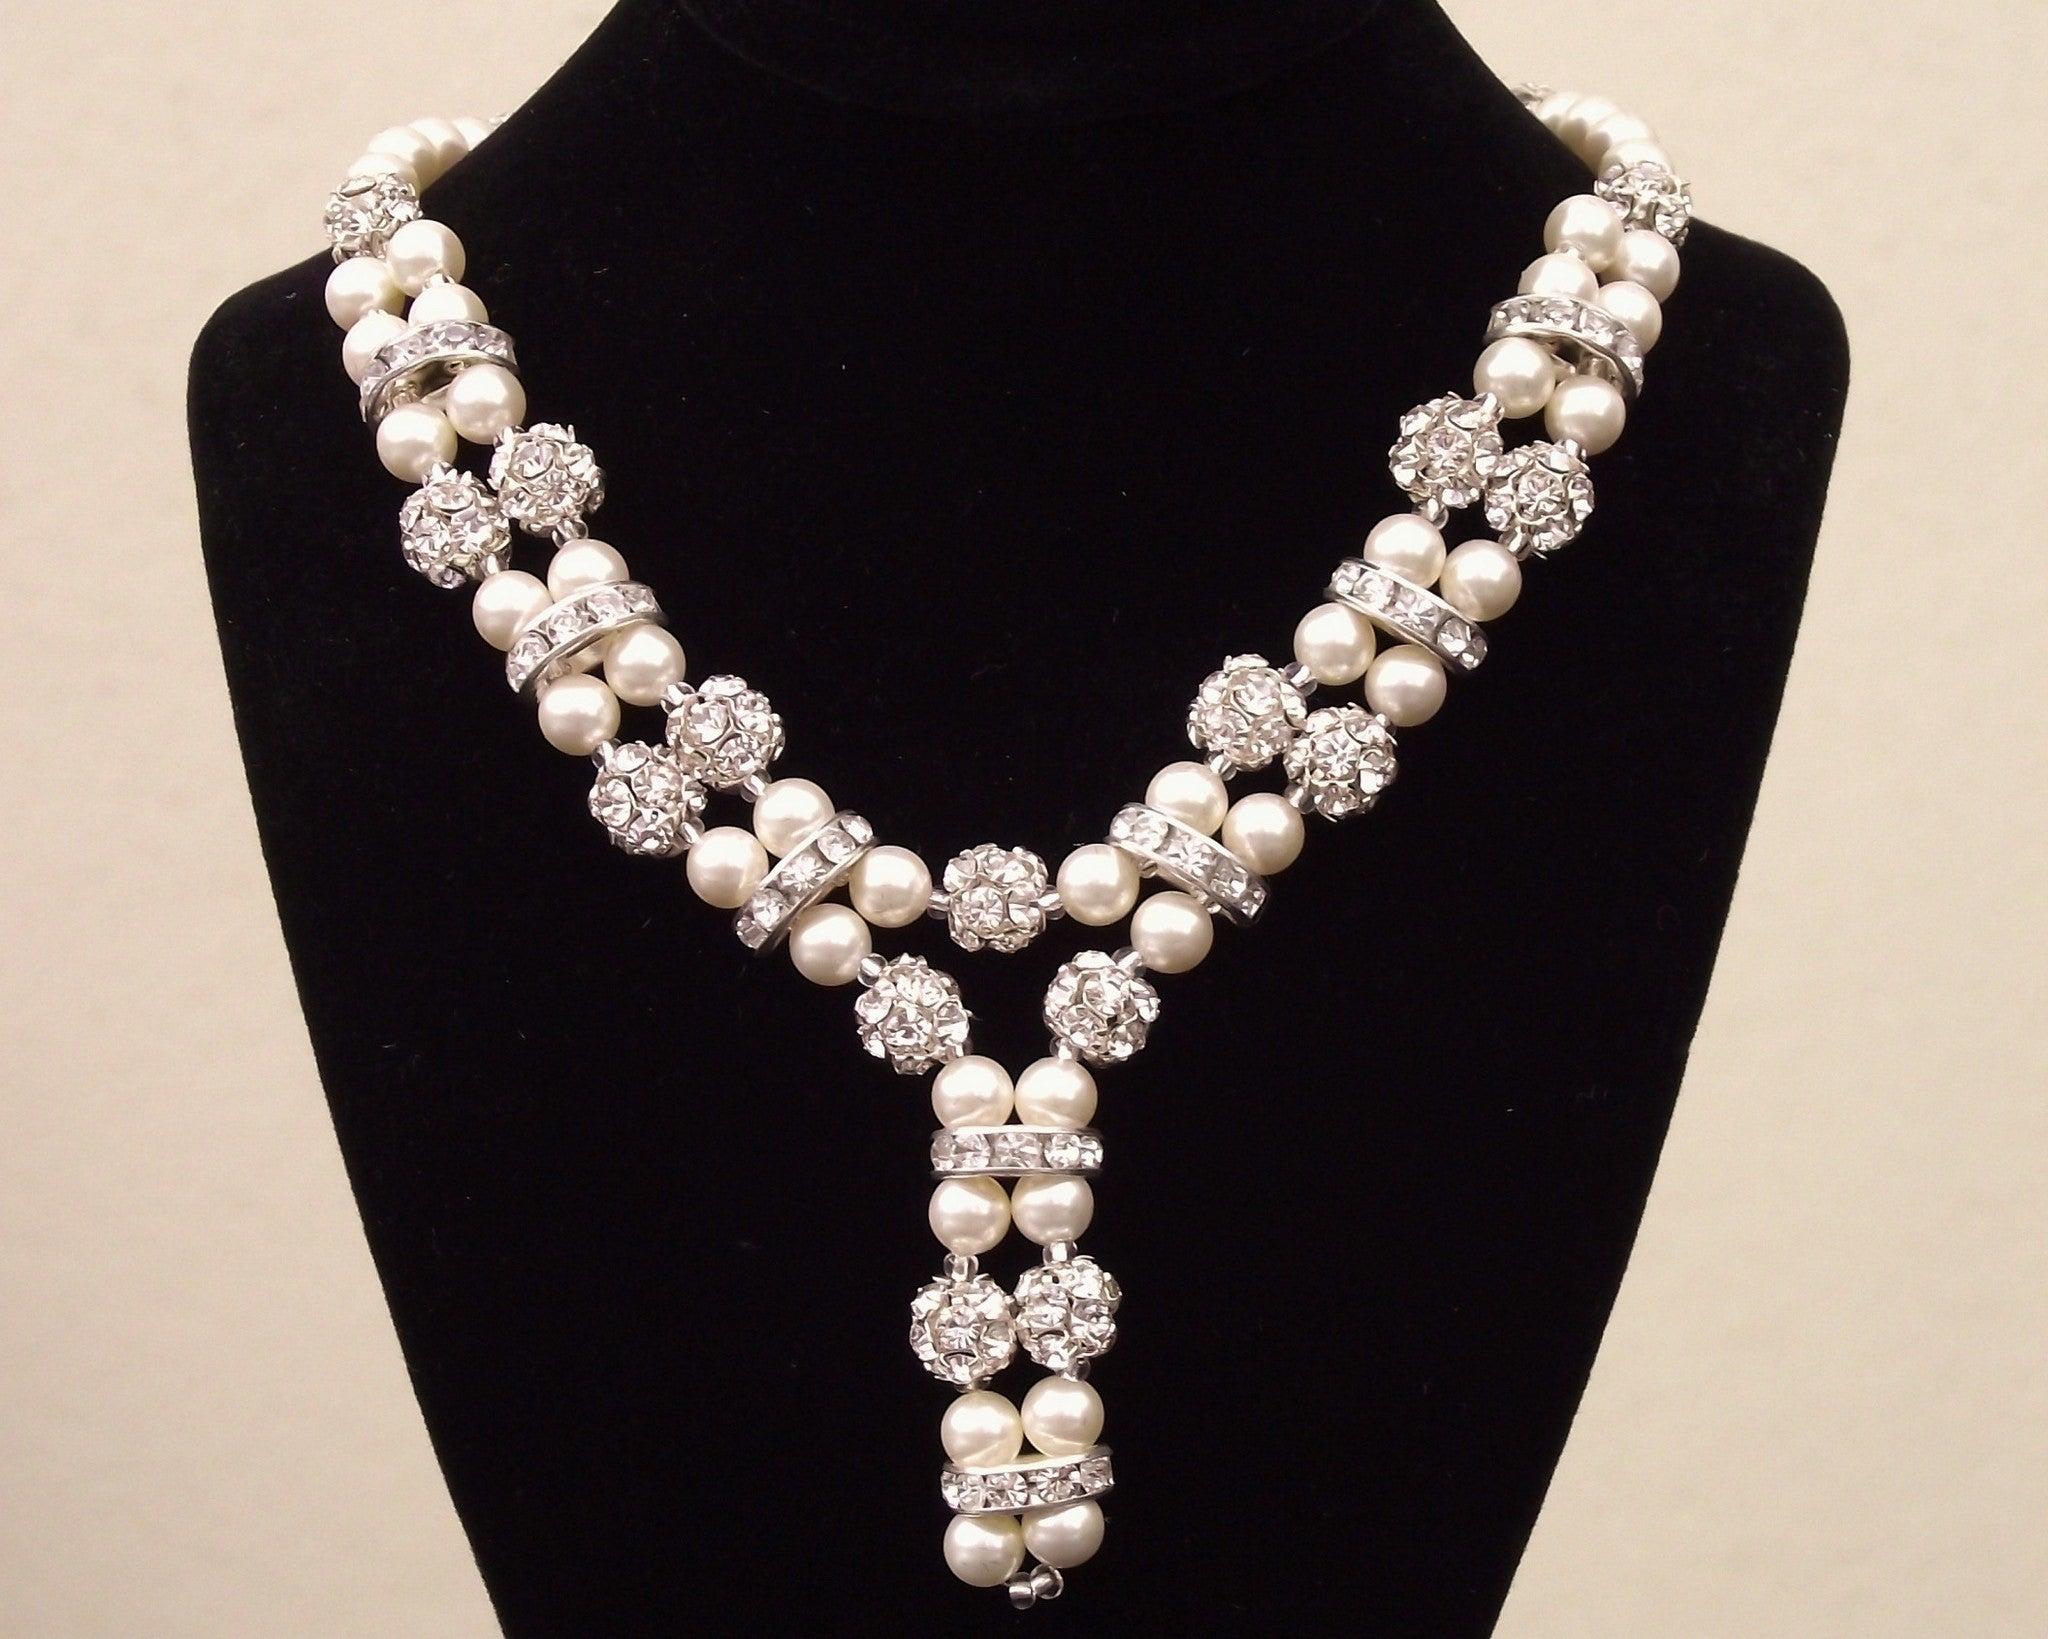 Sparkling pearl crystal pendant calista jules bridal jewellery wedding necklace beautiful pearl crystal encrusted wedding necklace monroe junglespirit Gallery